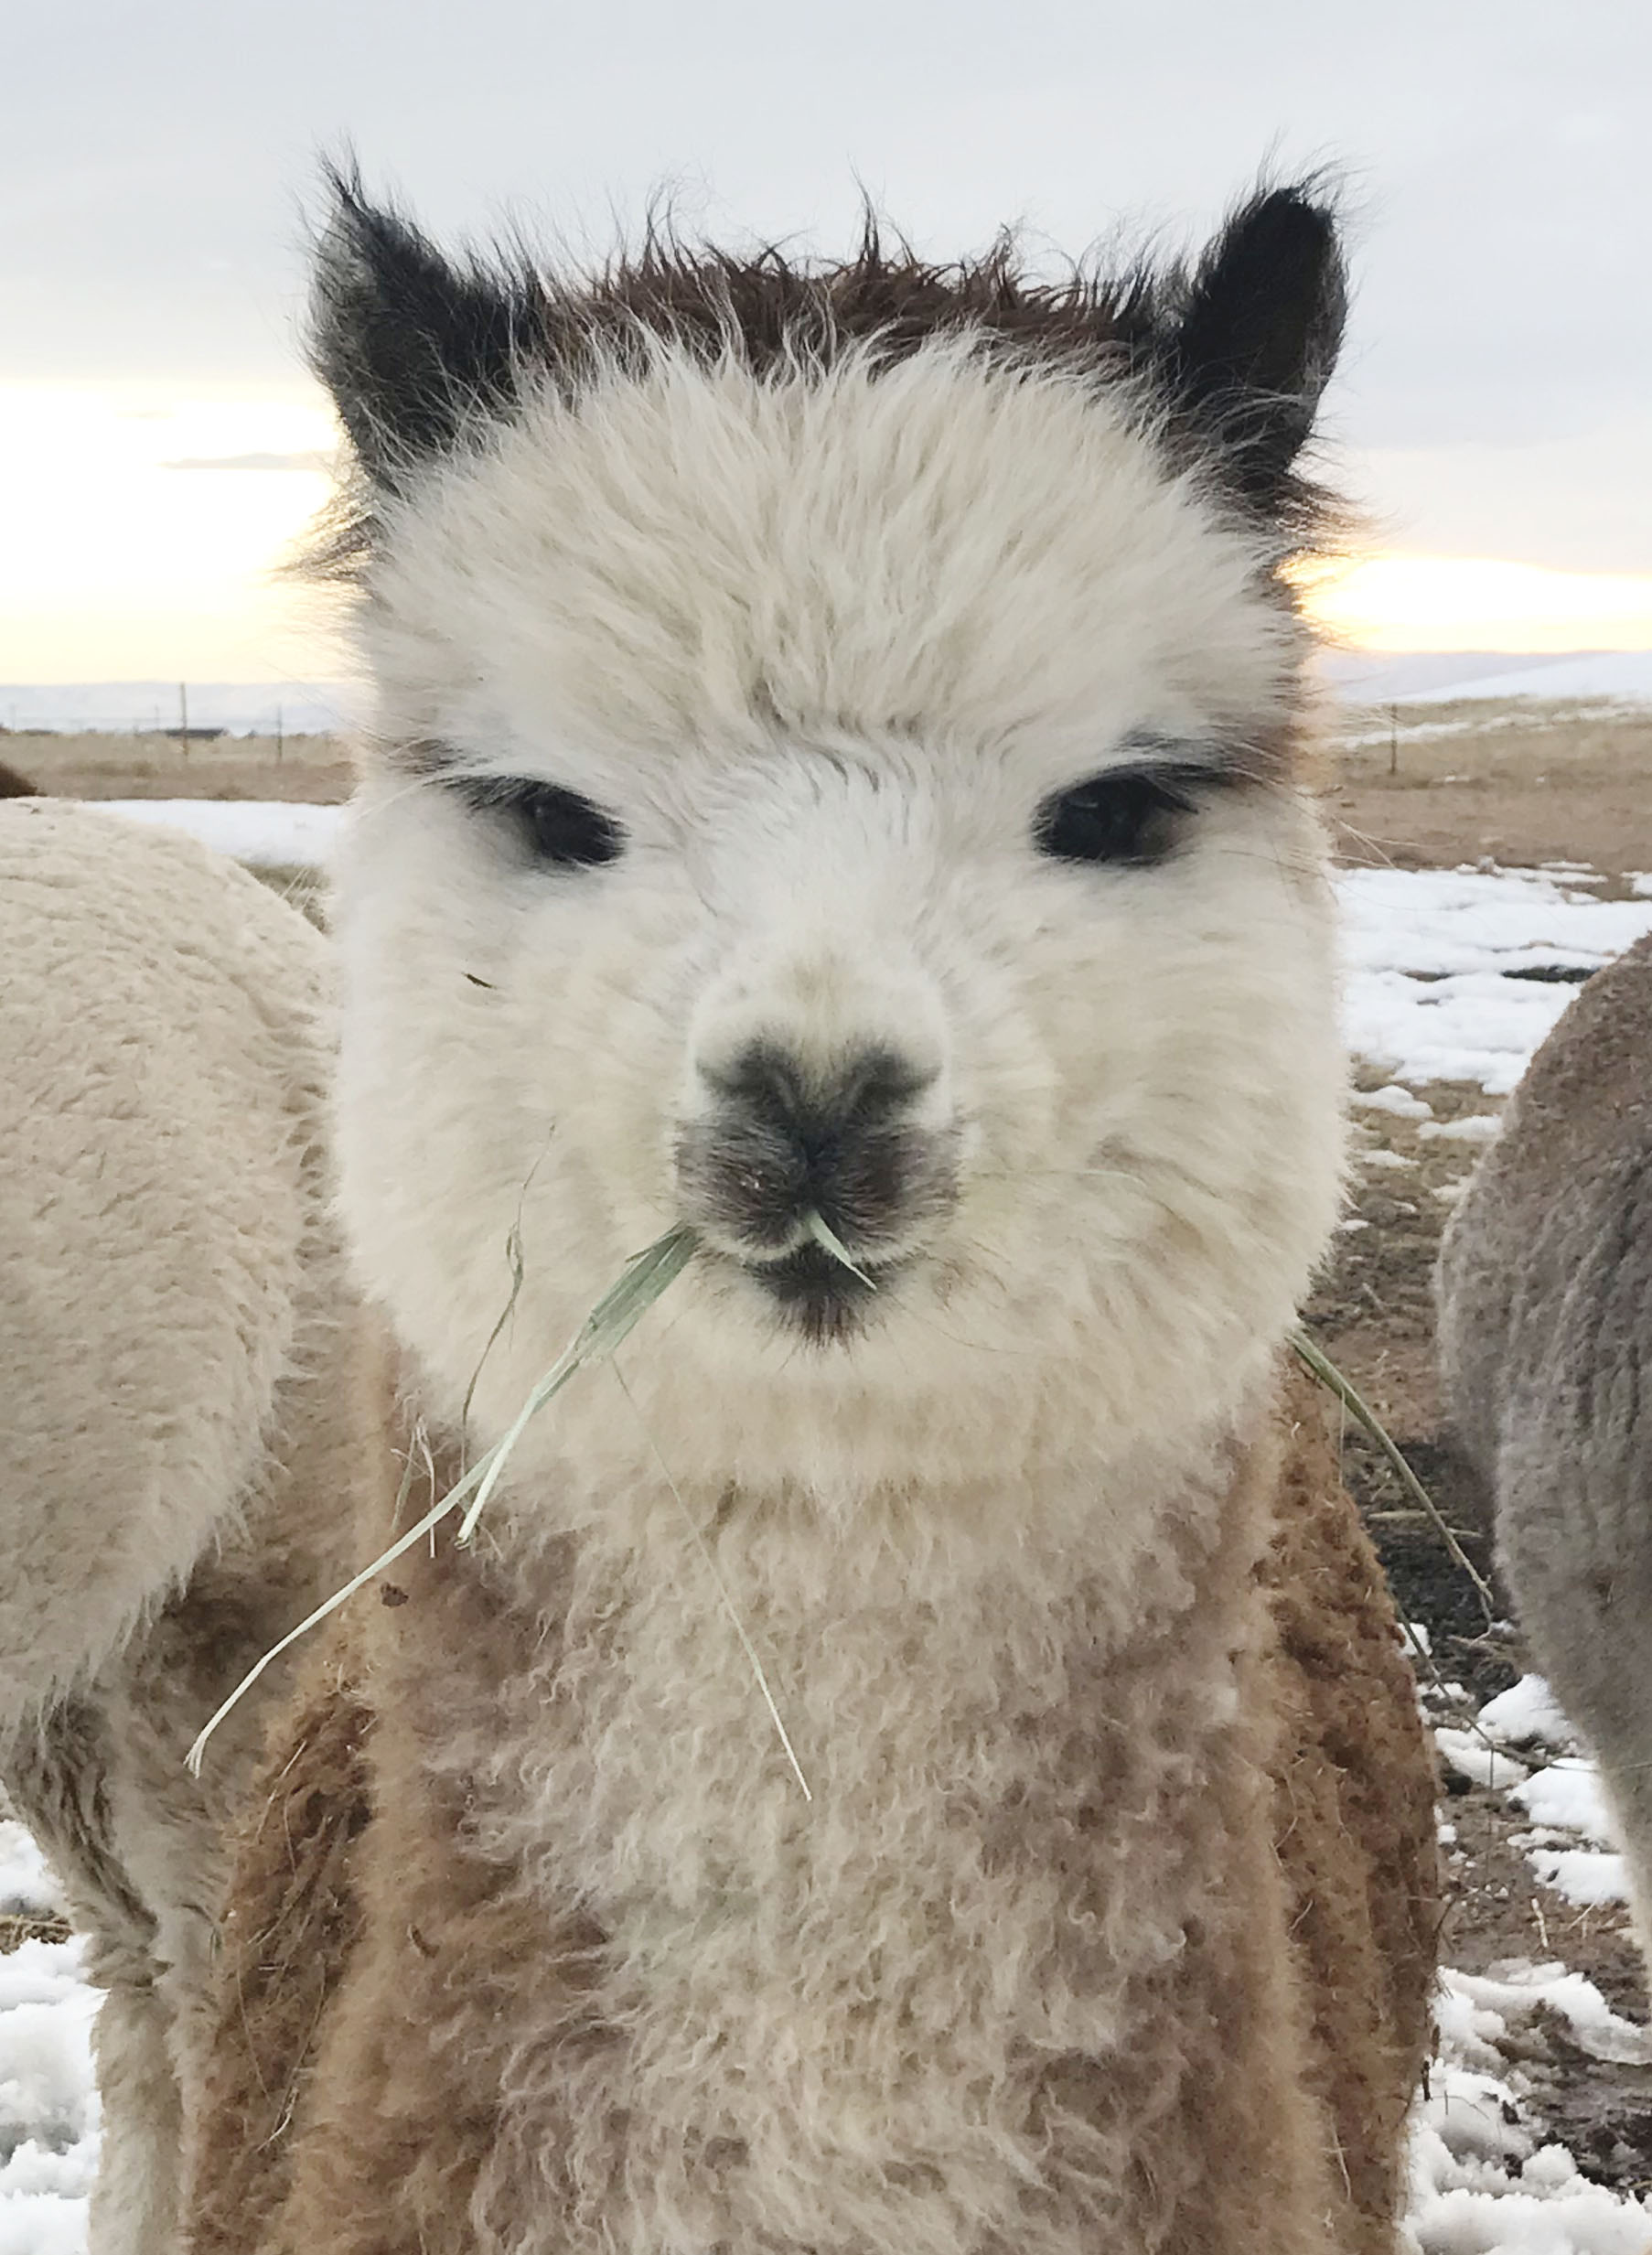 Ferdy the alpaca